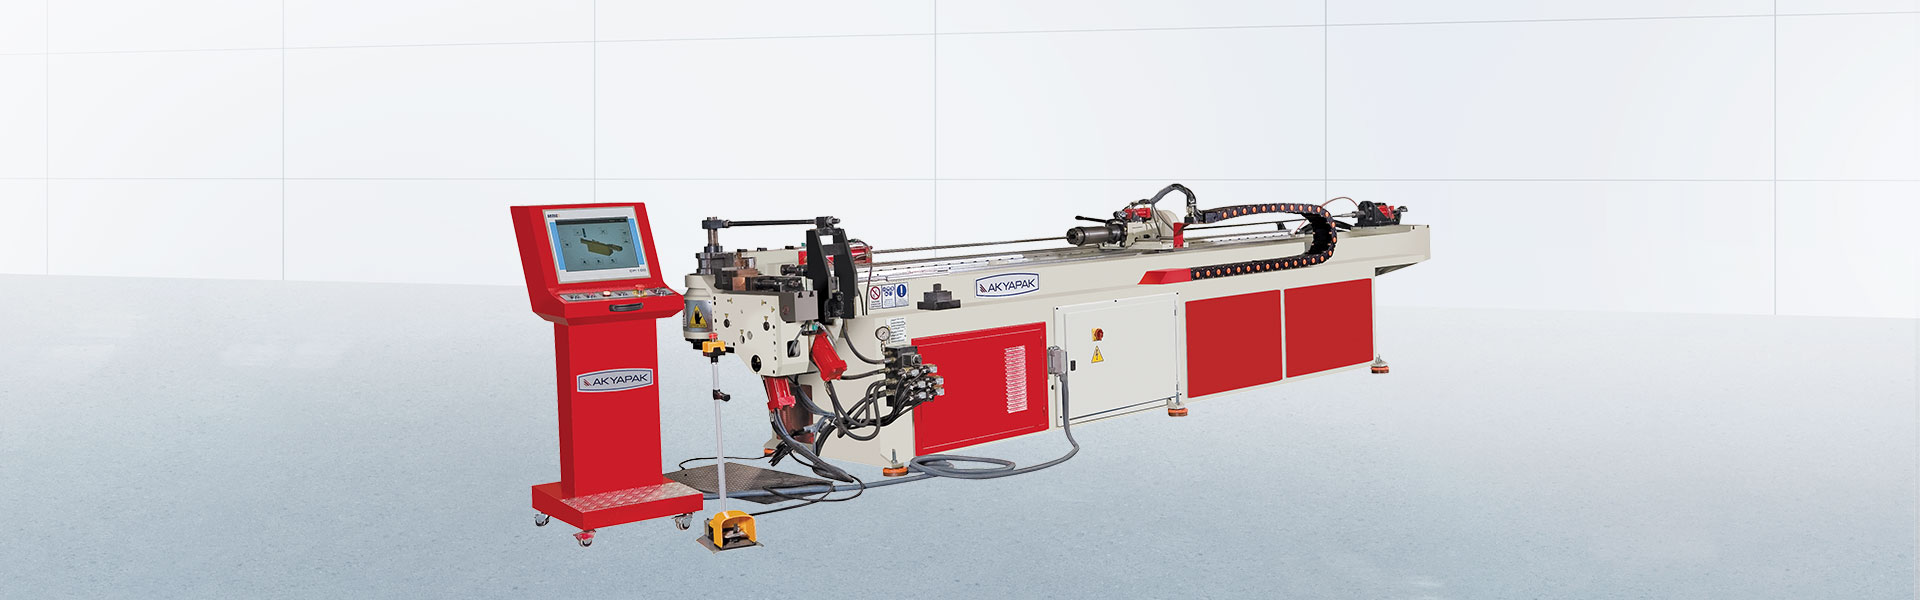 ABM 76 NC Tube Bending Machine